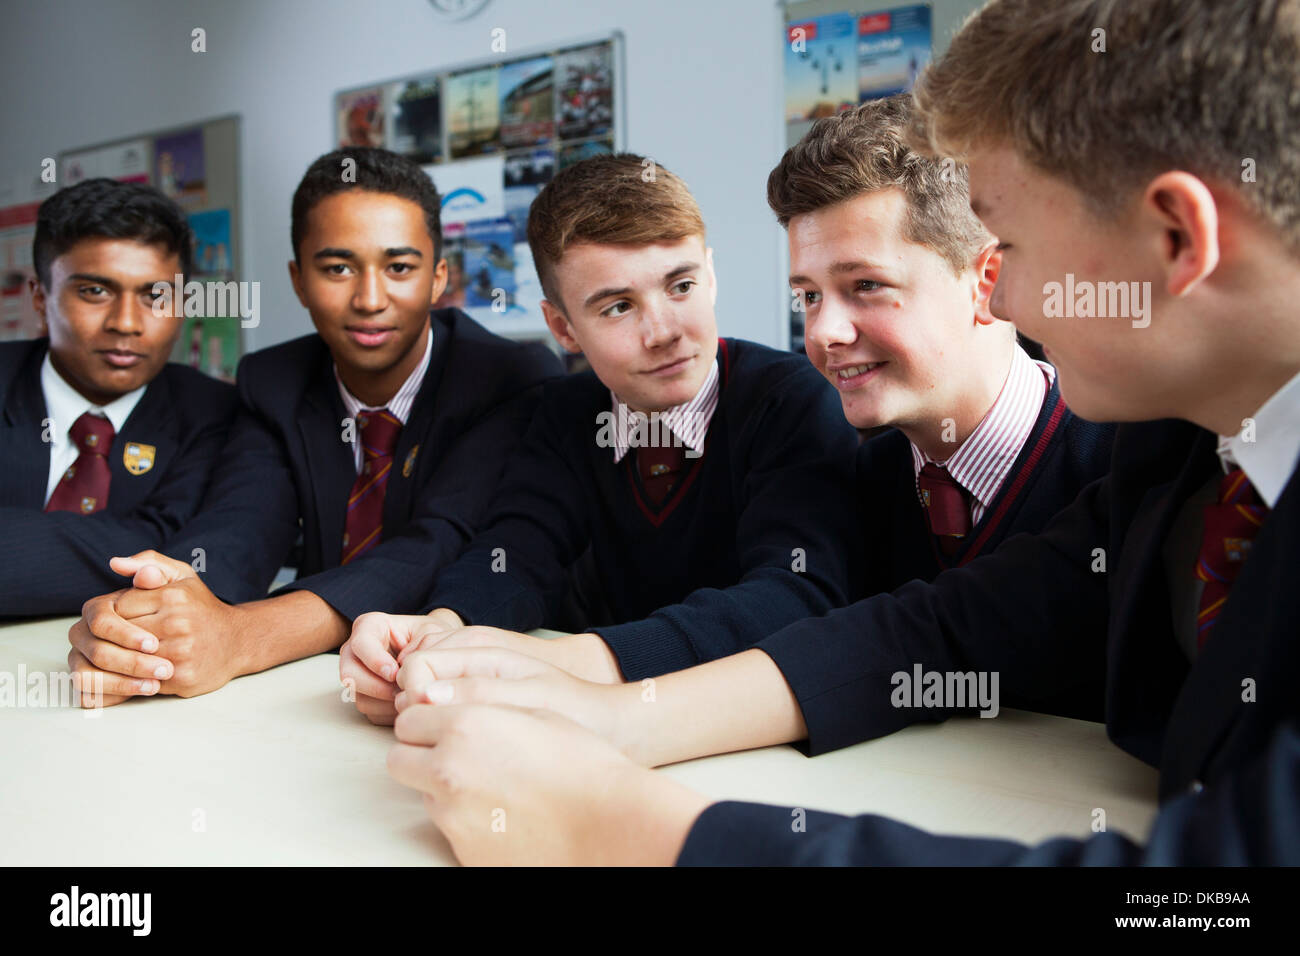 Group of schoolboys discussing ideas in class - Stock Image